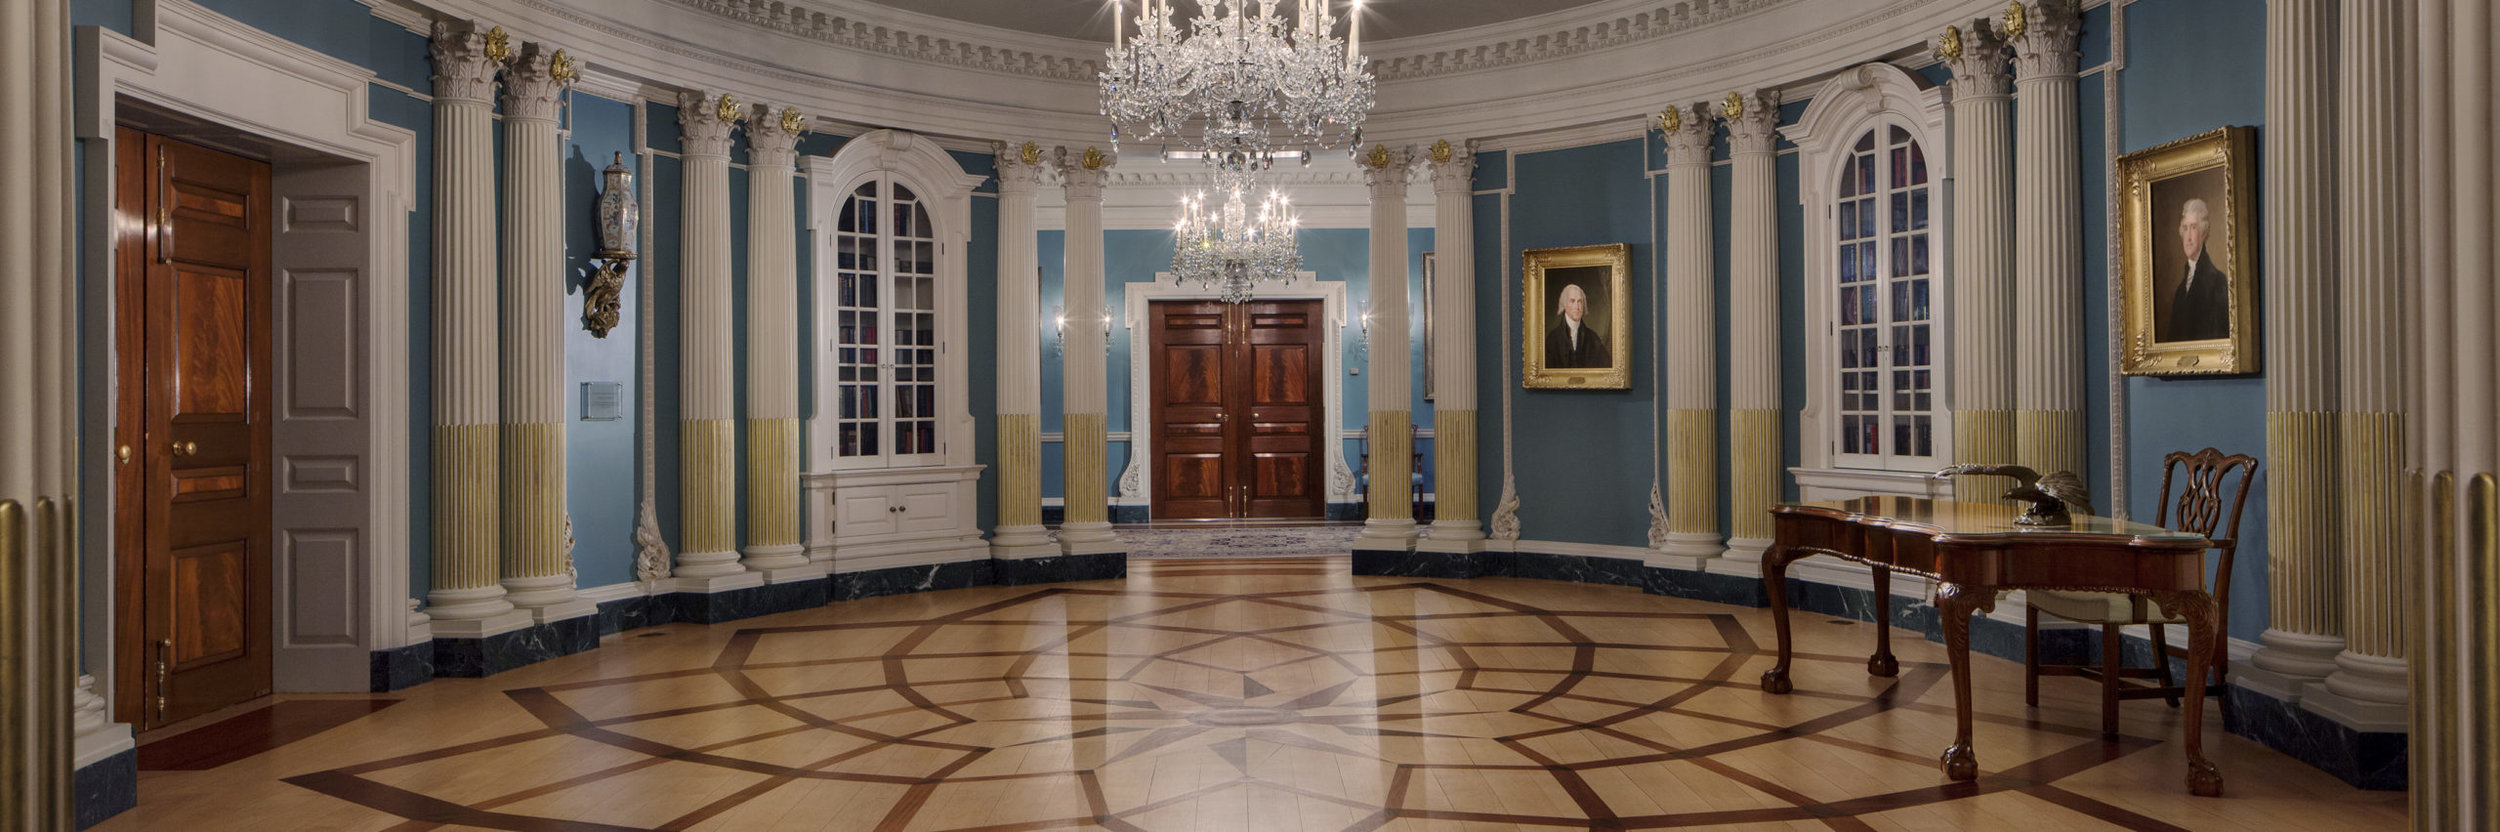 The Treaty Room, U.S. State Department